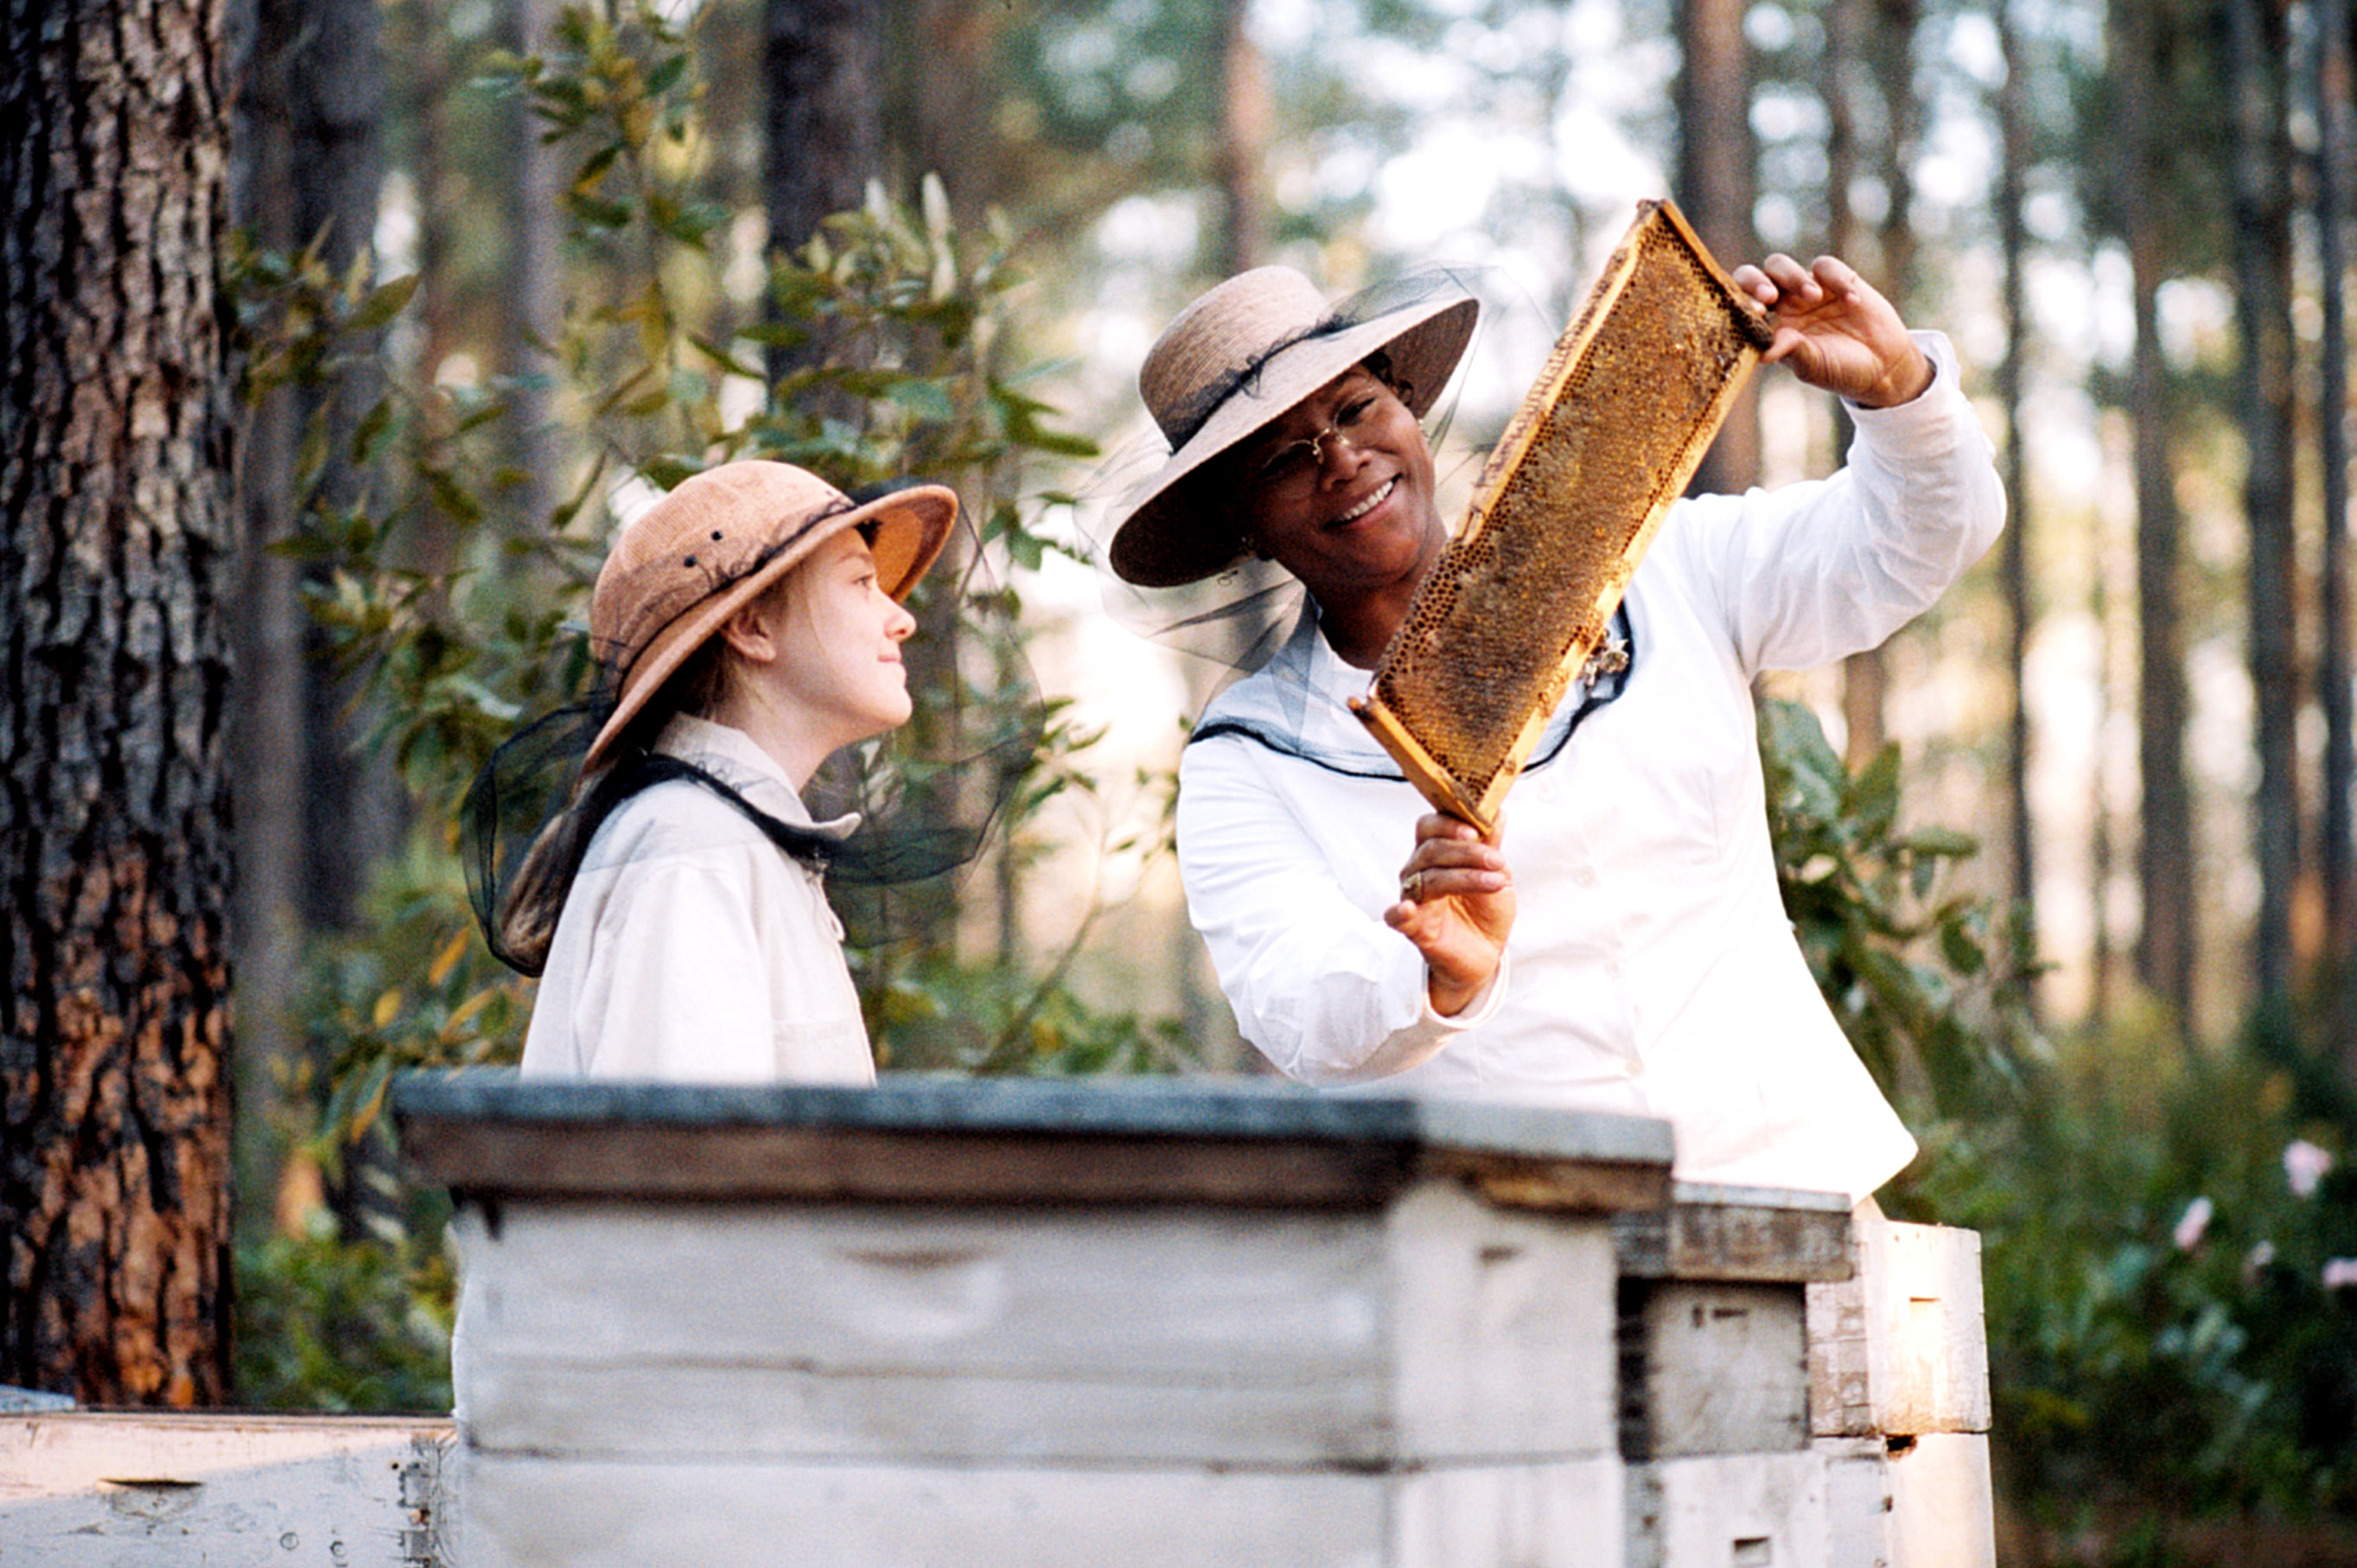 THE SECRET LIFE OF BEES, from left: Dakota Fanning, Queen Latifah, 2008, TM and ©Copyright Twentieth Century Fox. All Rights Reserved./Courtesy Everett Collection